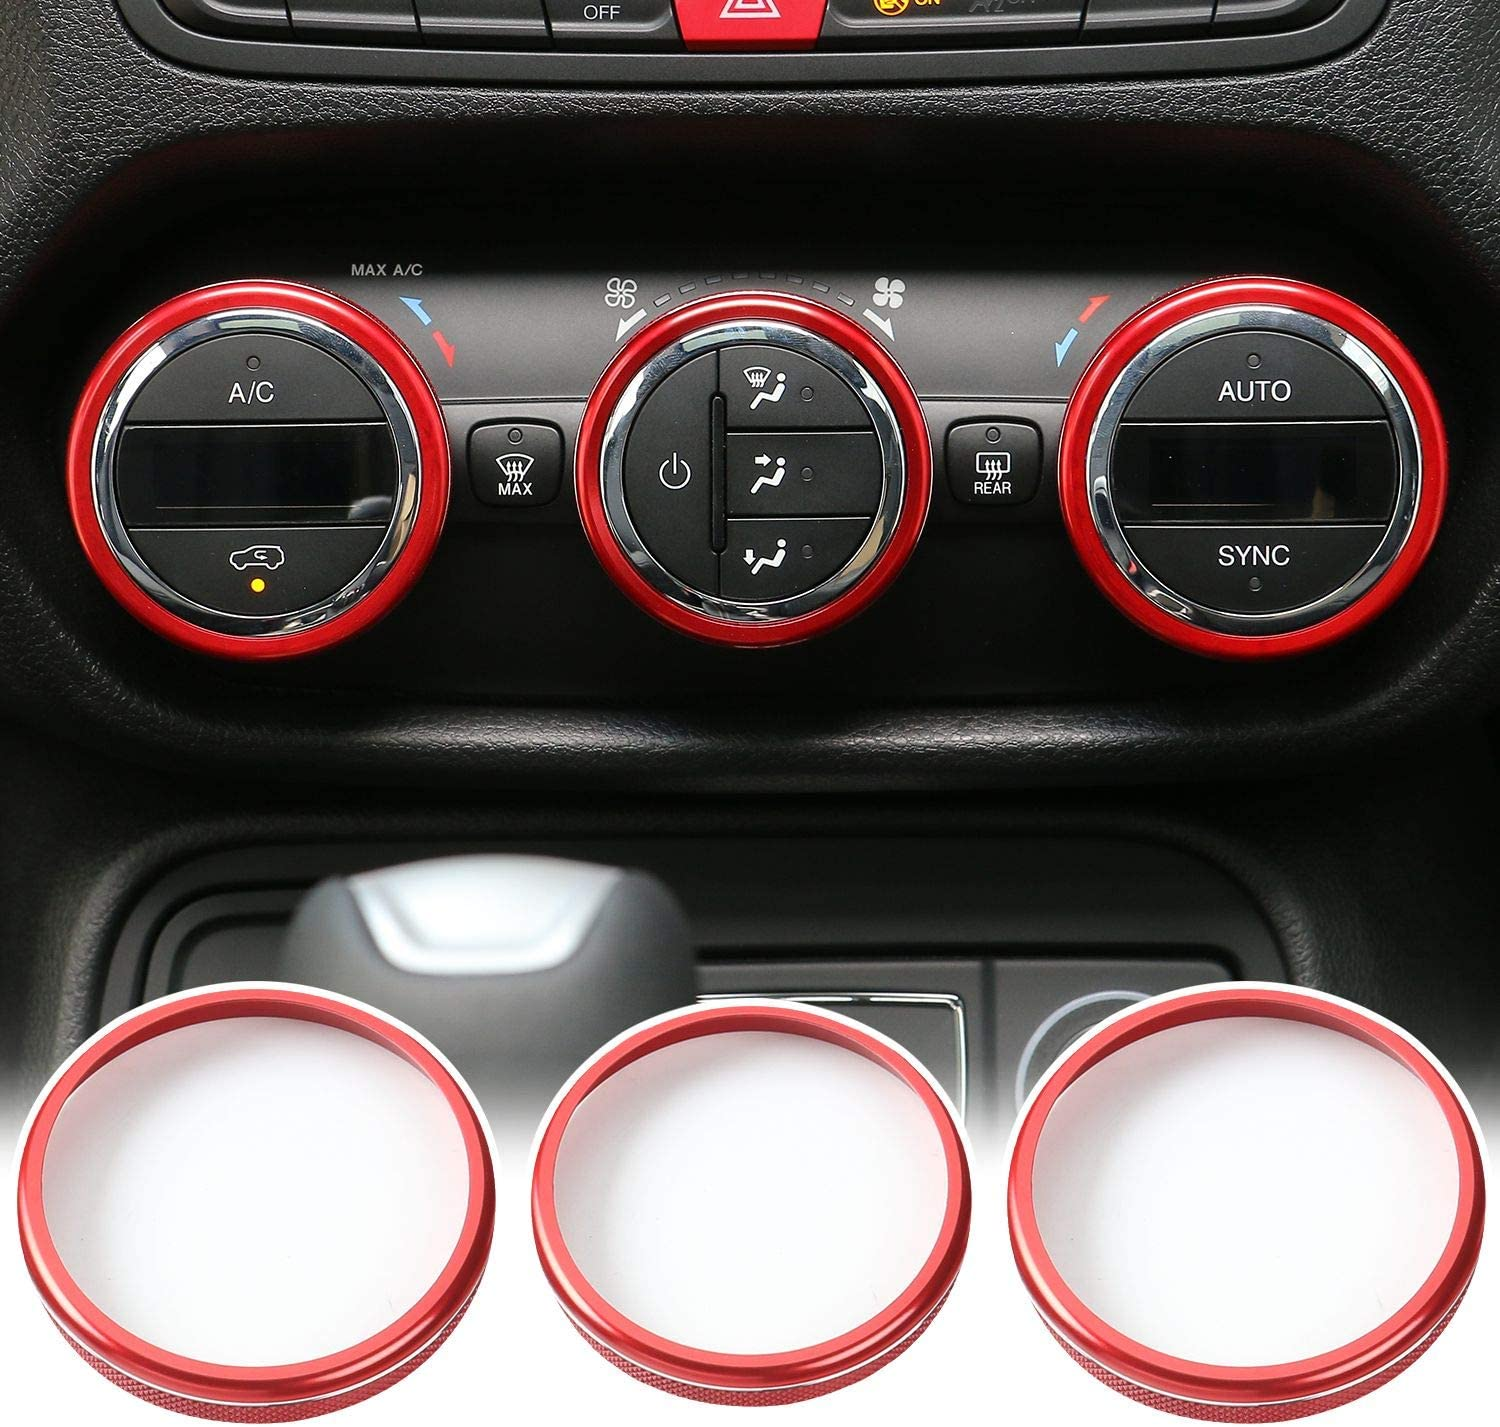 Red JeCar Air Conditioner Trim Cover Aluminum Alloy Air Conditioner Switch Knob Cover for 2015-2017 Jeep Renegade